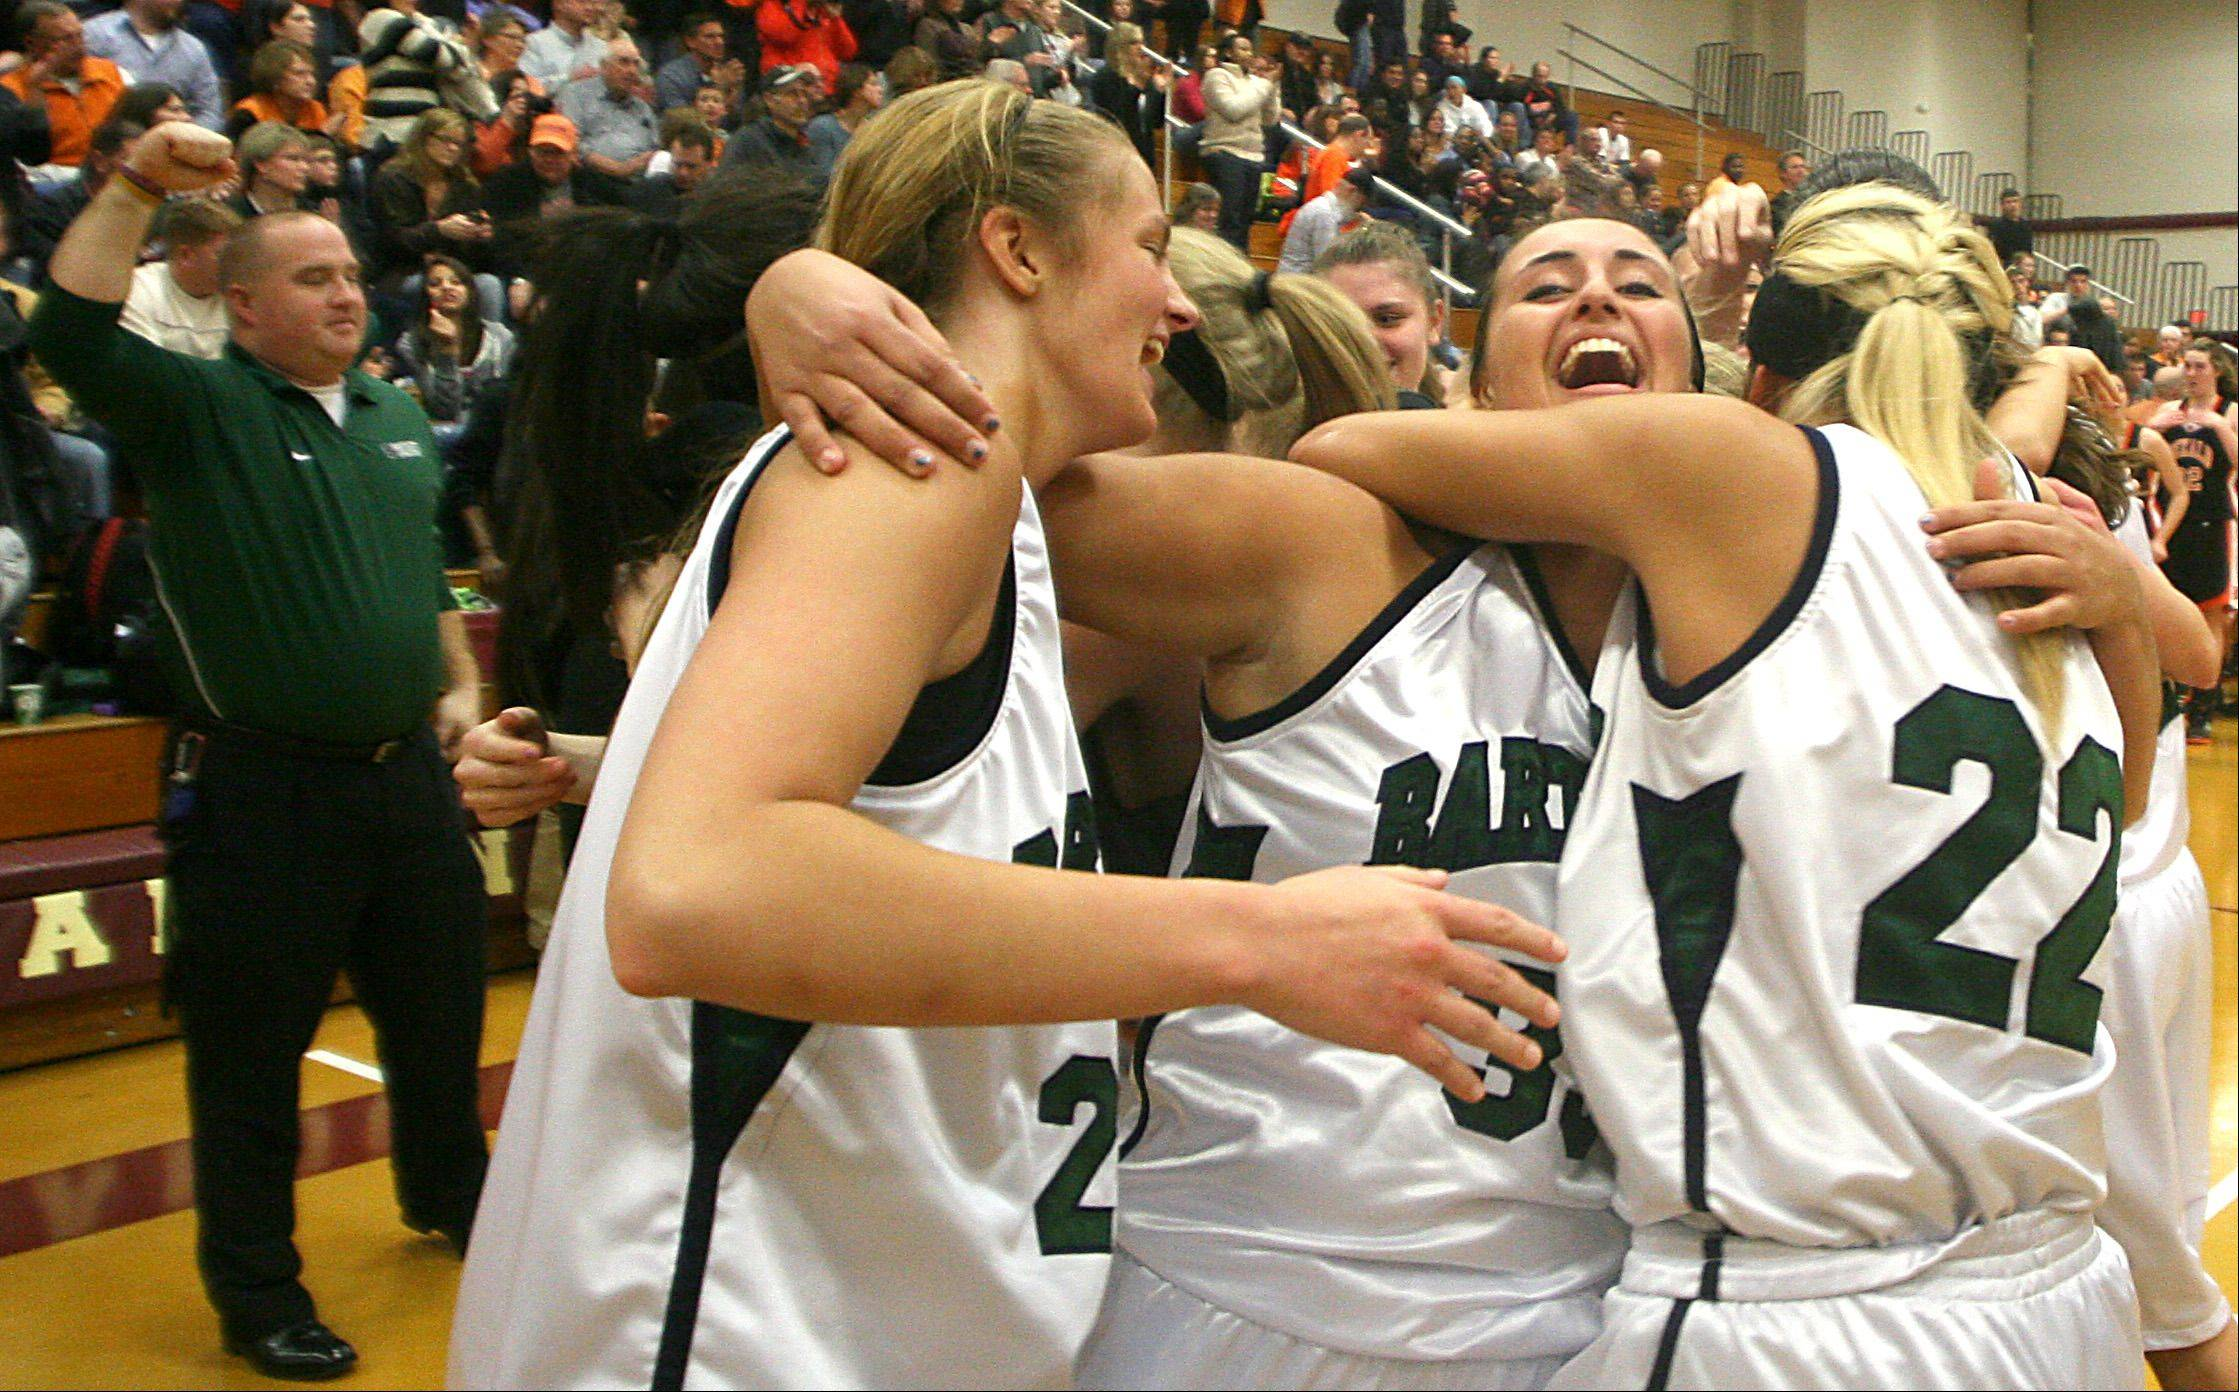 From left, Bartlett players Kristin Conniff, Tracy Raggio, and Haley Videckis hug as they celebrate a supersectional win over DeKalb at Chesbrough Field House in Elgin on Monday night.